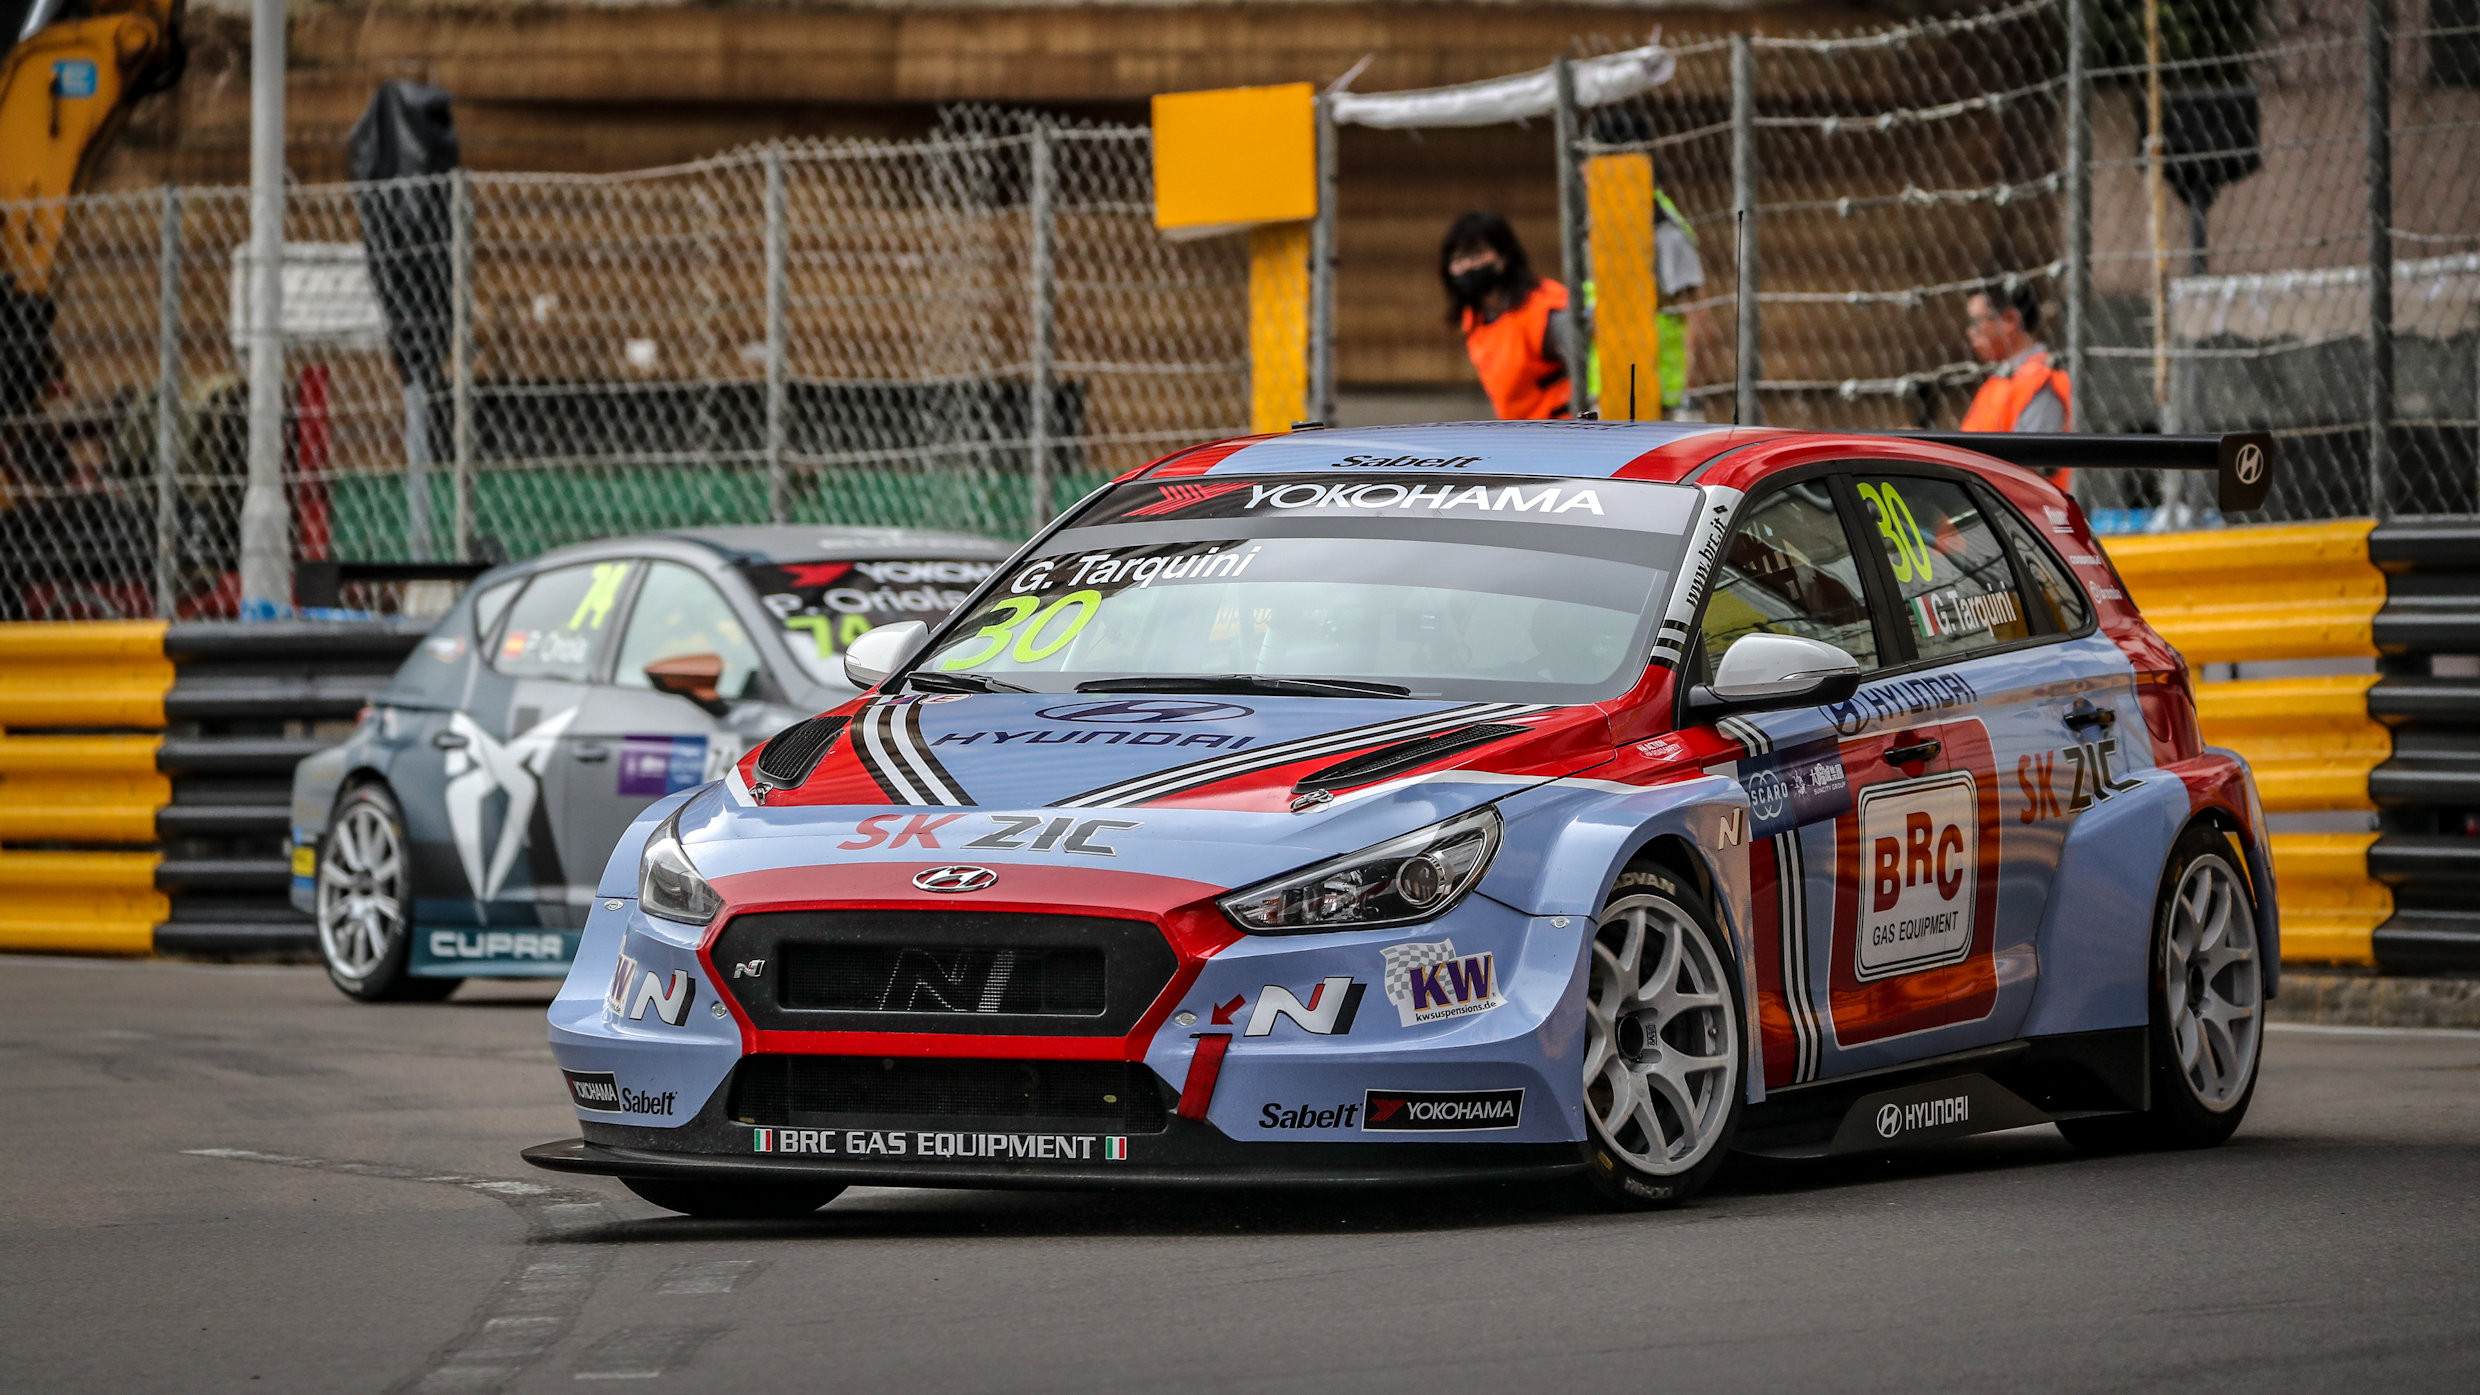 Gabriele Tarquini Wins The 2018 Wtcr Title At Macau As Guerrieri Wins Last Race Touringcartimes